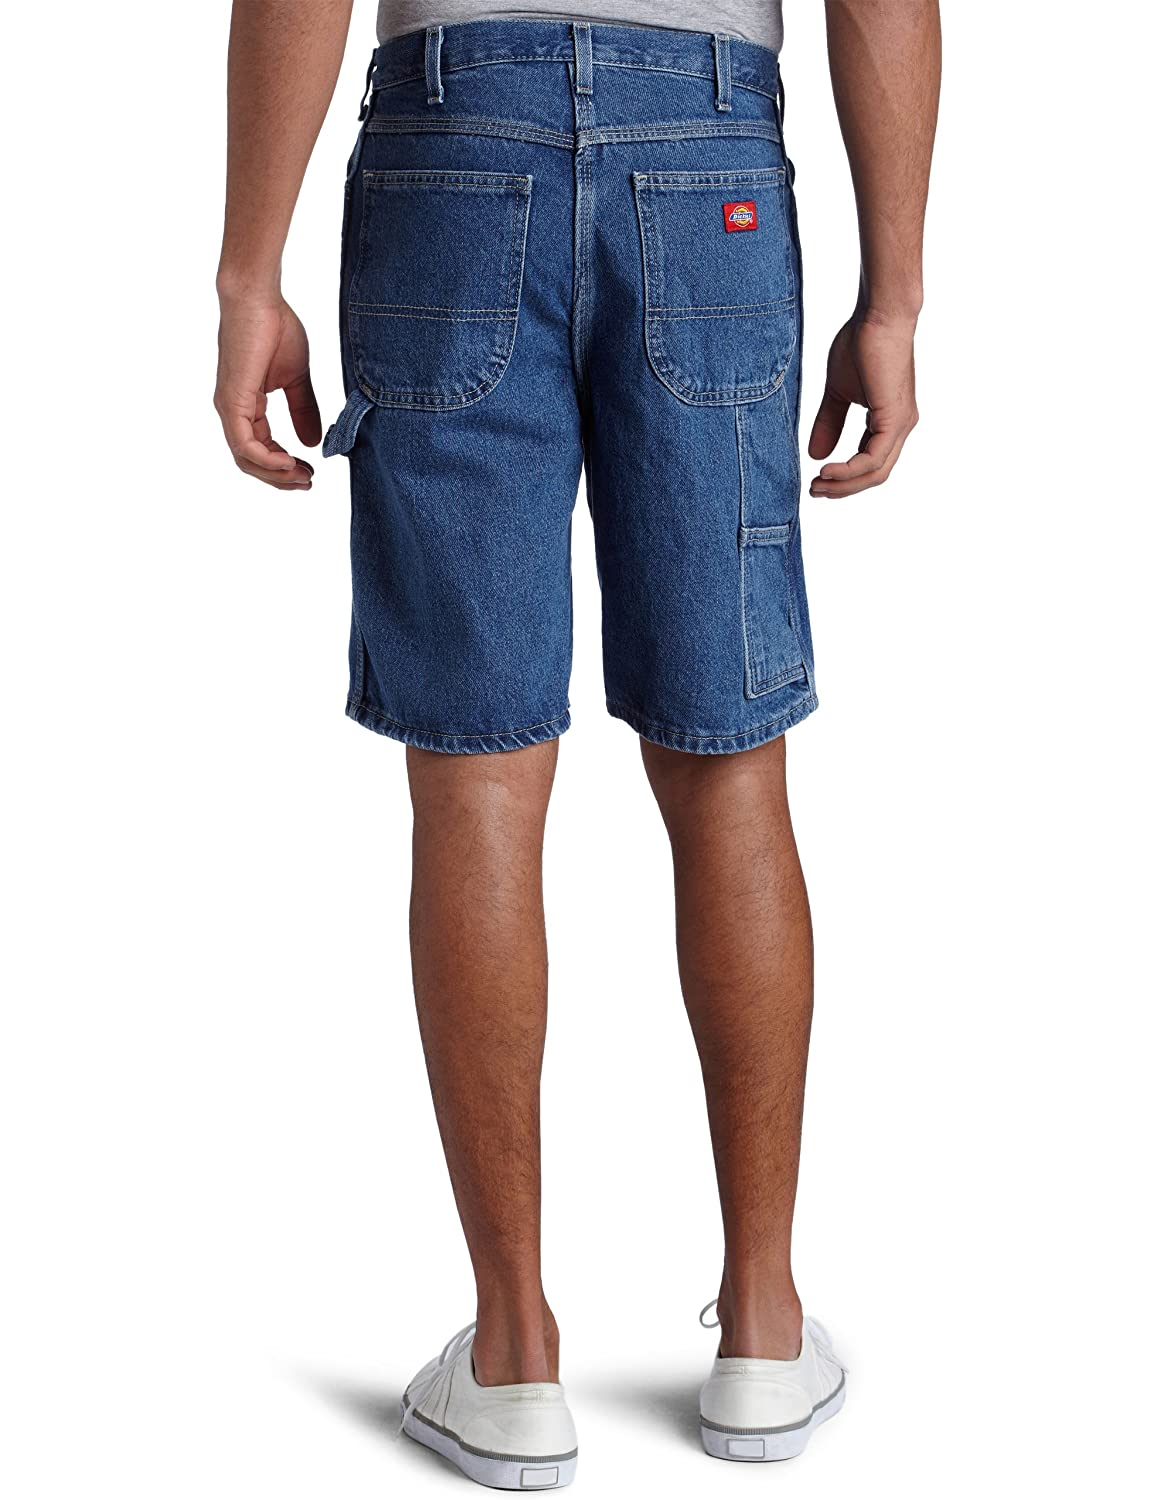 04b847ed Dickies Men's Big 9 1/2 Inch Inseam Relaxed Fit Carpenter Short at Amazon  Men's Clothing store: